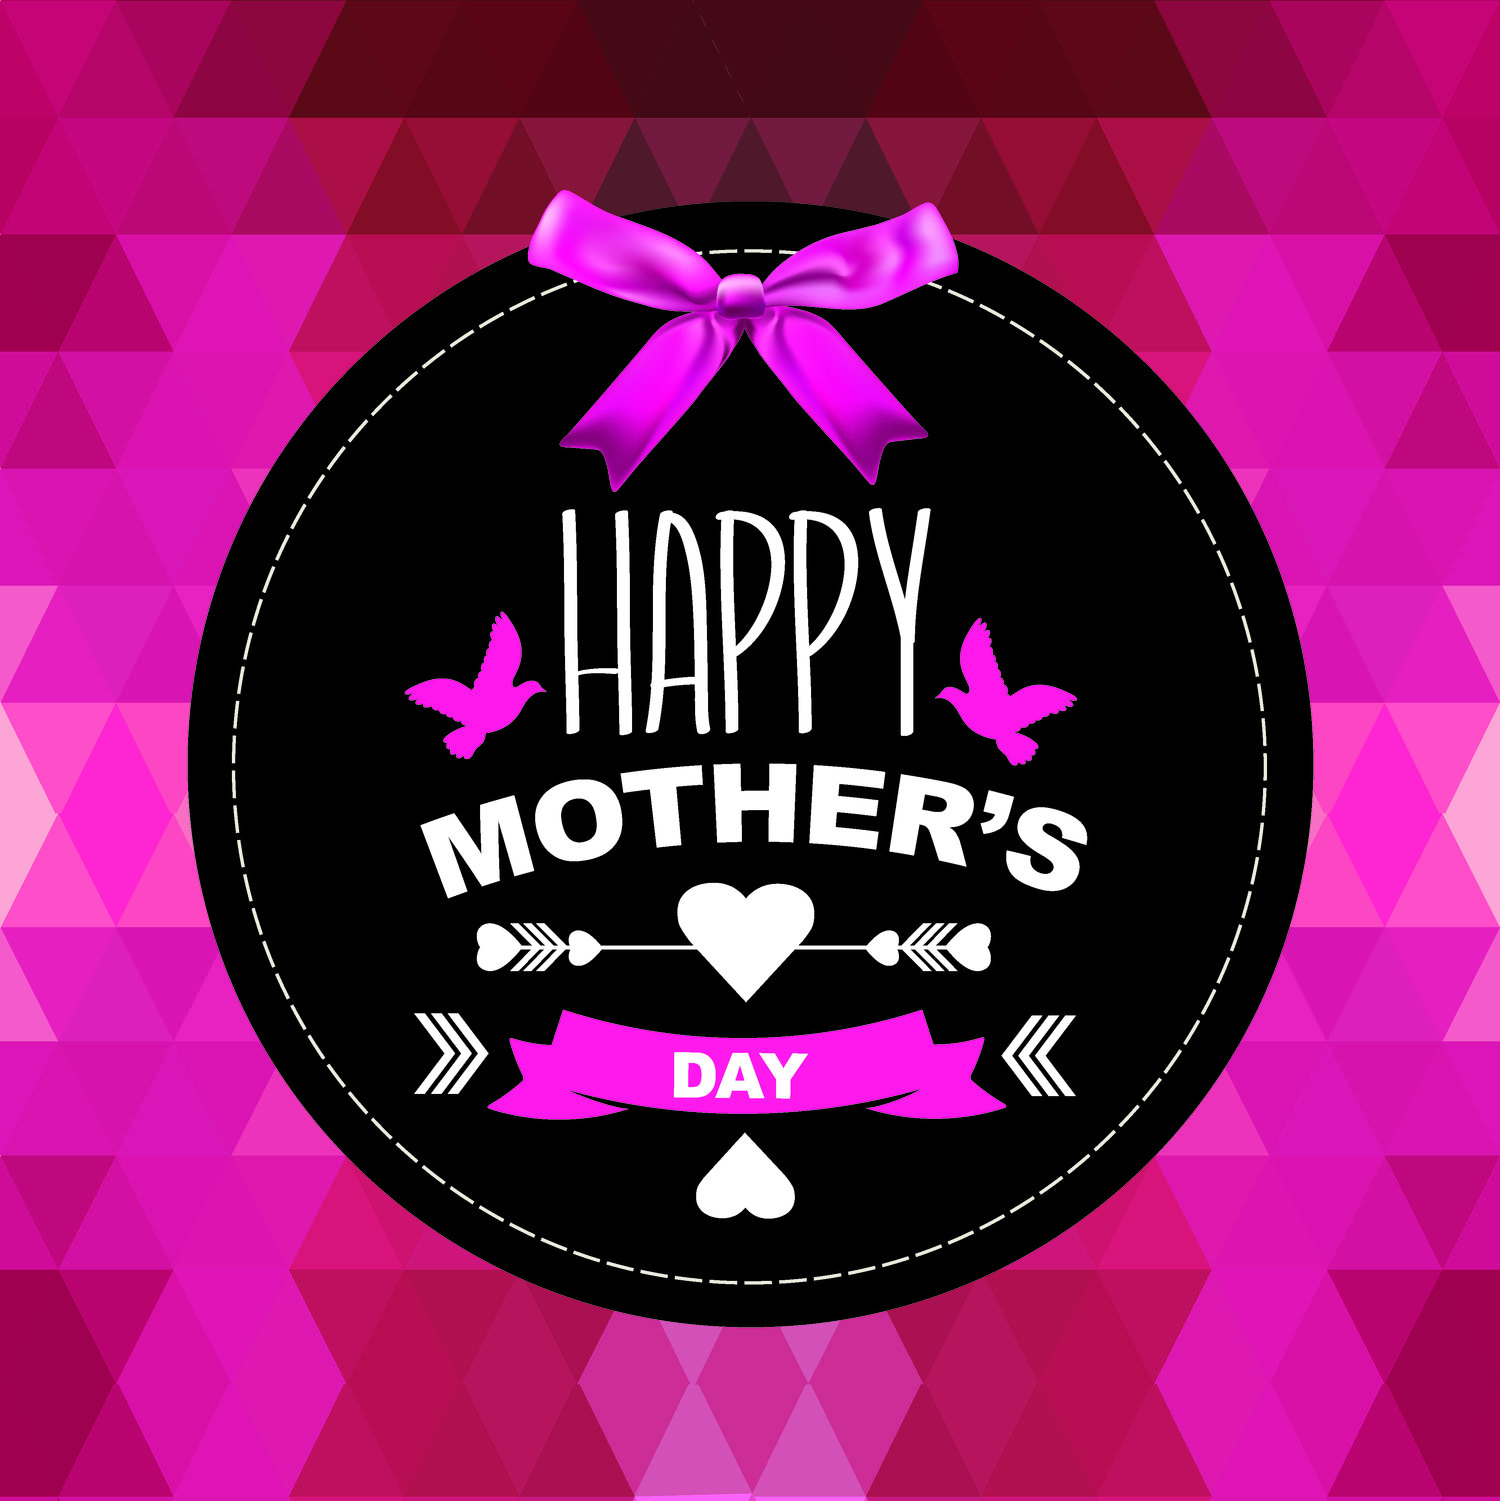 31 very best mothers day greeting pictures and photos 35 most adorable mothers day 2017 greeting pictures m4hsunfo